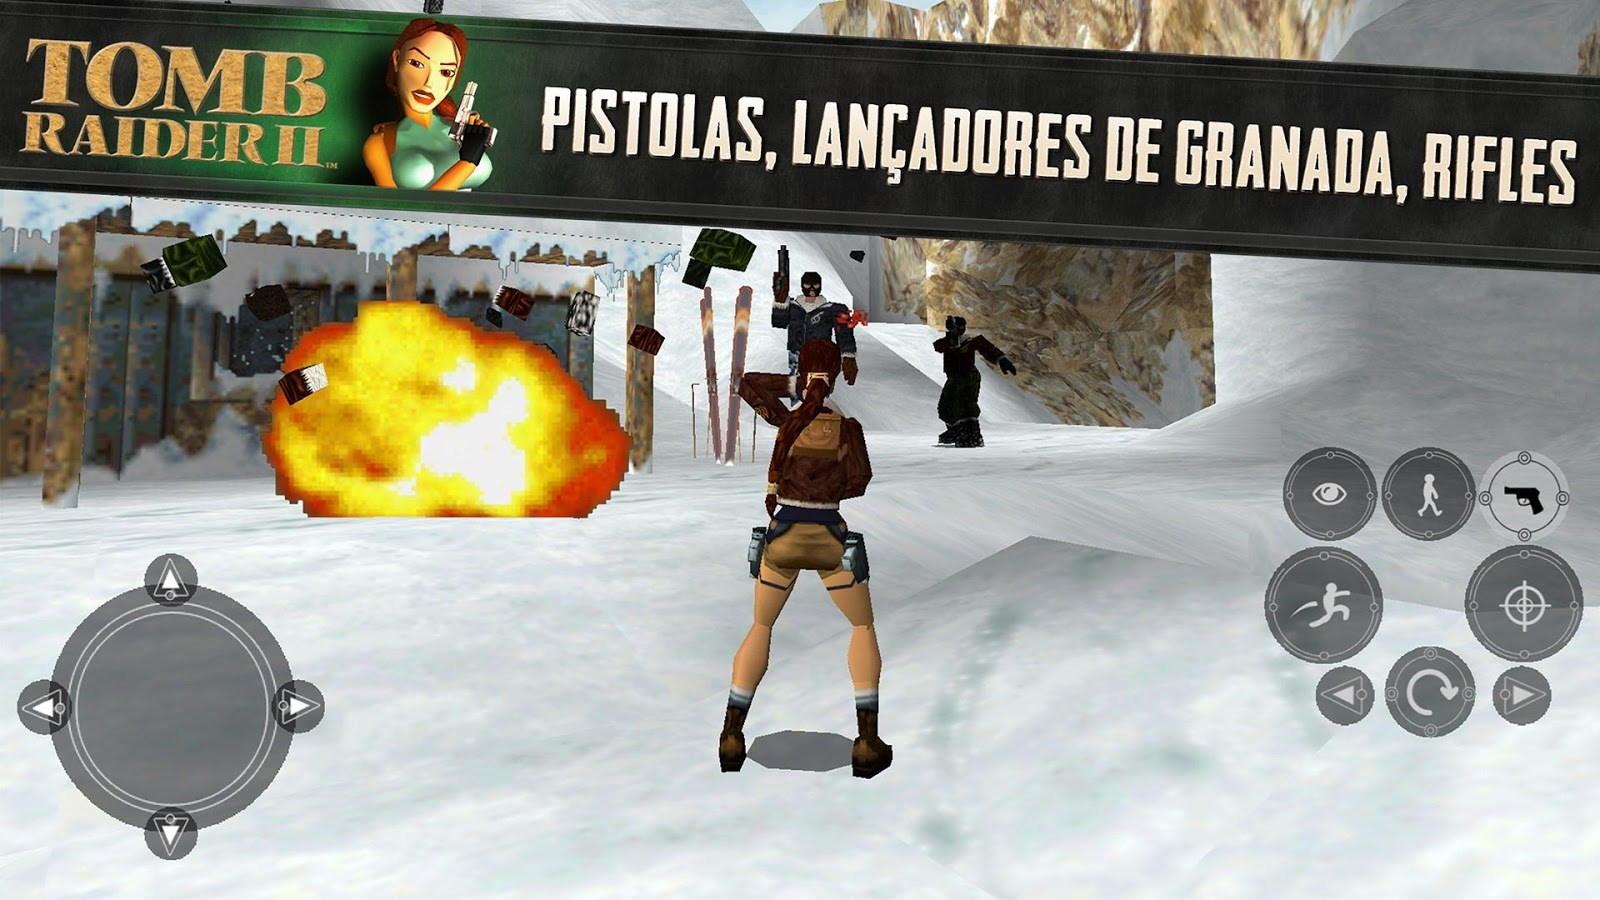 Tomb Raider II - Imagem 1 do software